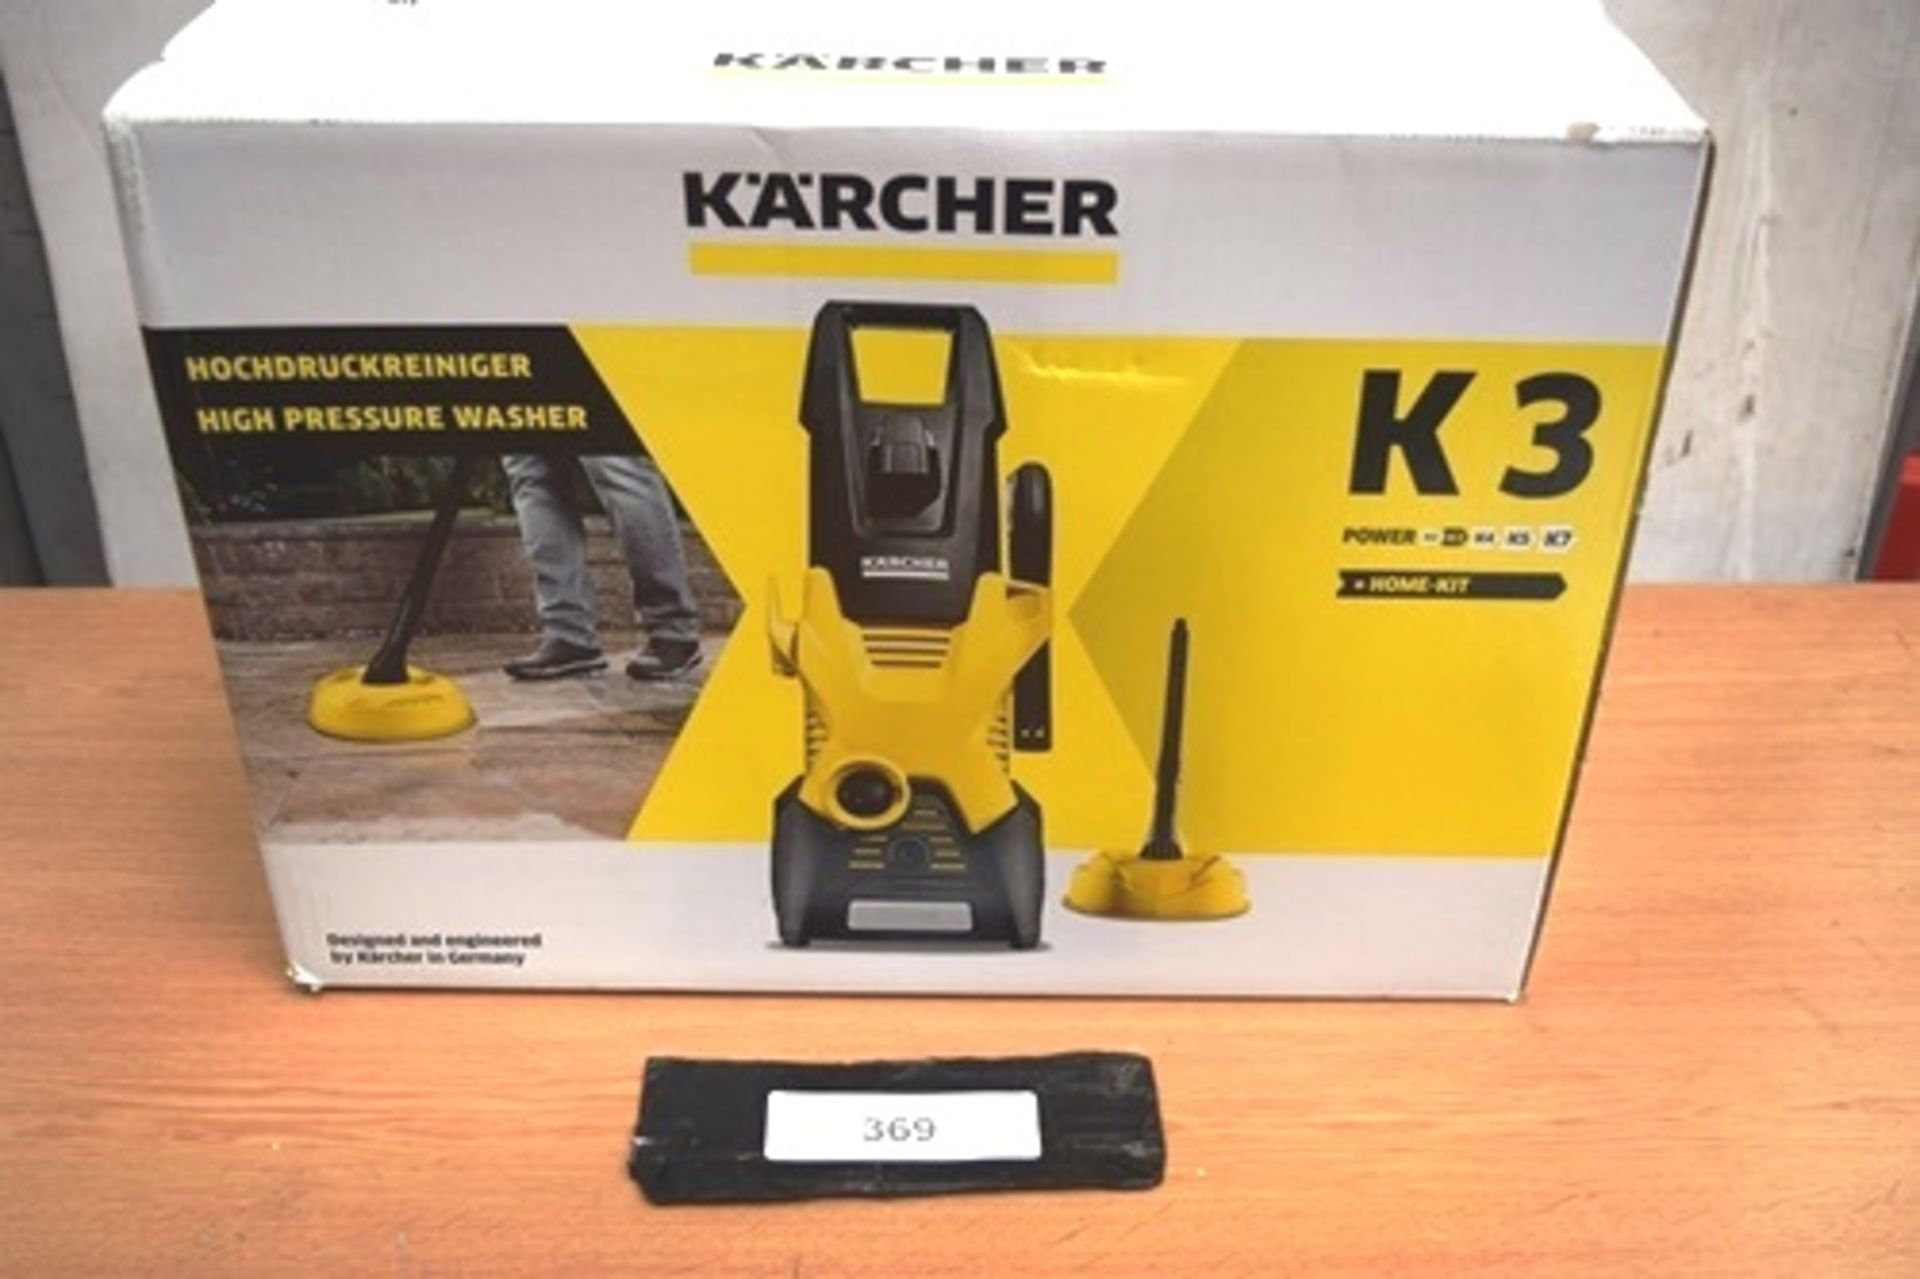 1 x K'Archer K3 high pressure washer and home kit, type K3H, P.N. 1.601-885.0, 240V - New in box (